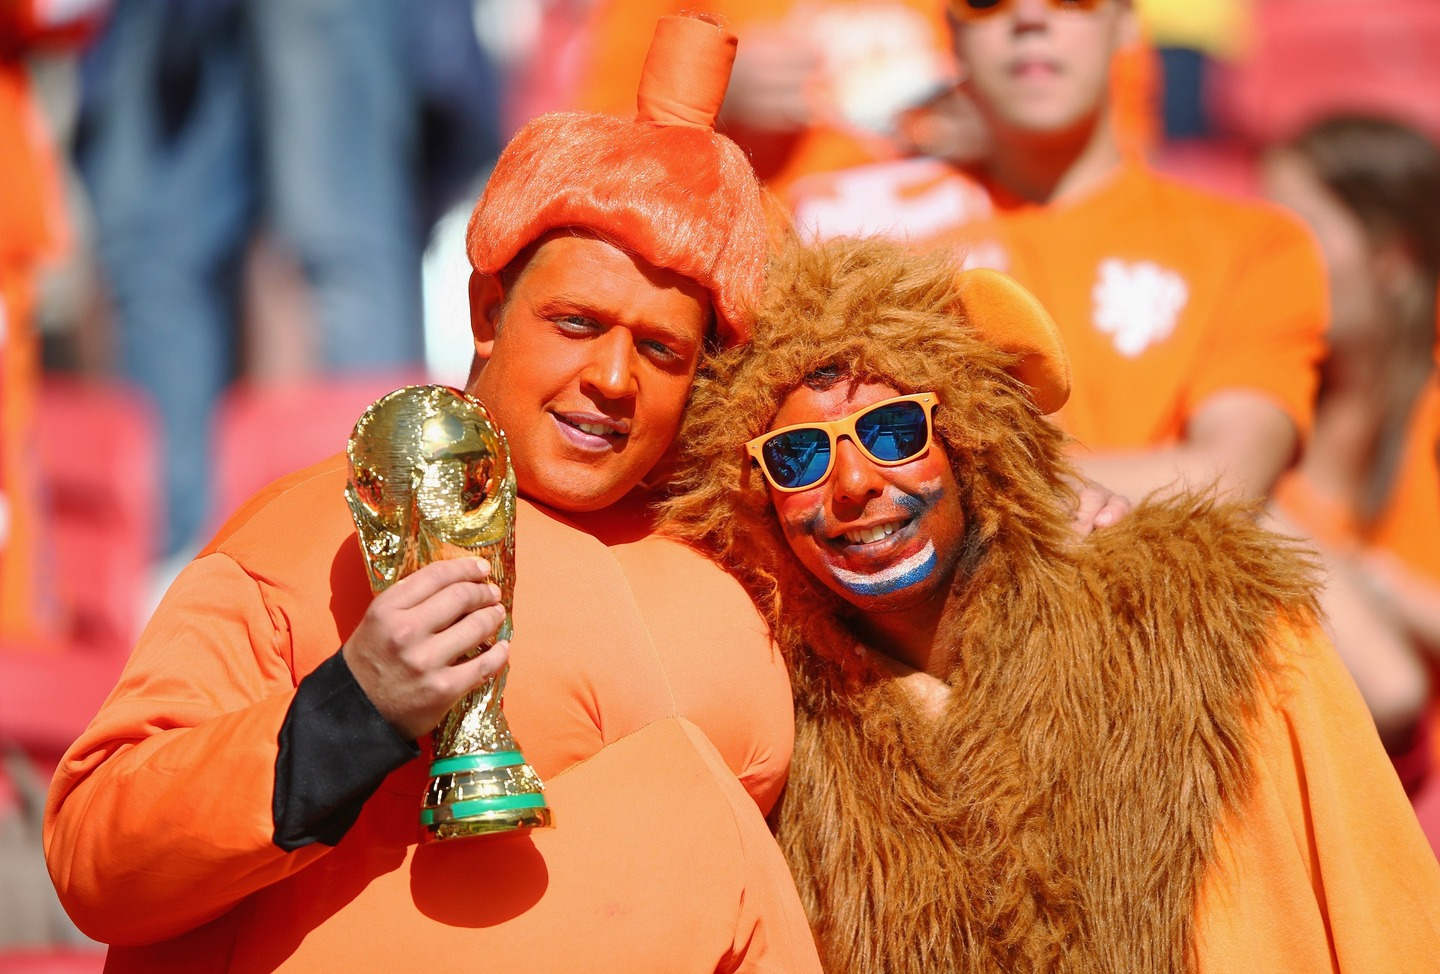 netherlands sumo guy - craziest fans at 2014 fifa world cup